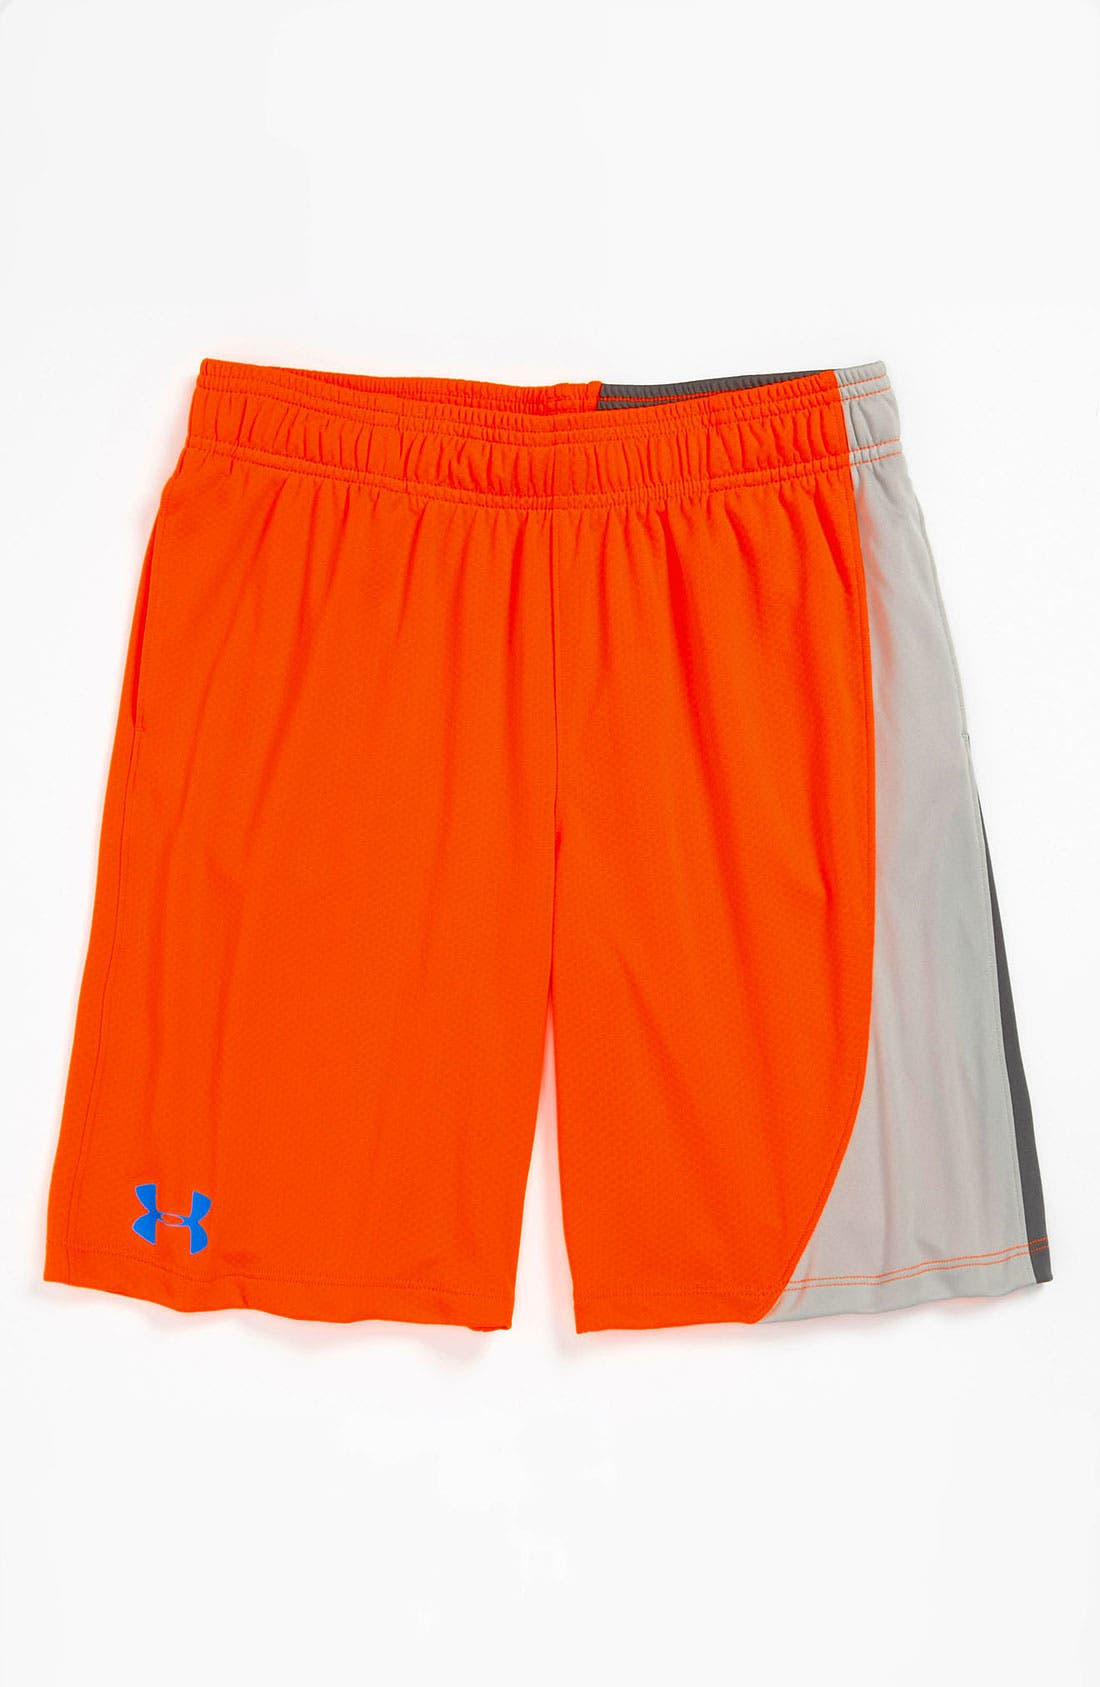 Alternate Image 1 Selected - Under Armour 'Influencer' Shorts (Big Boys)